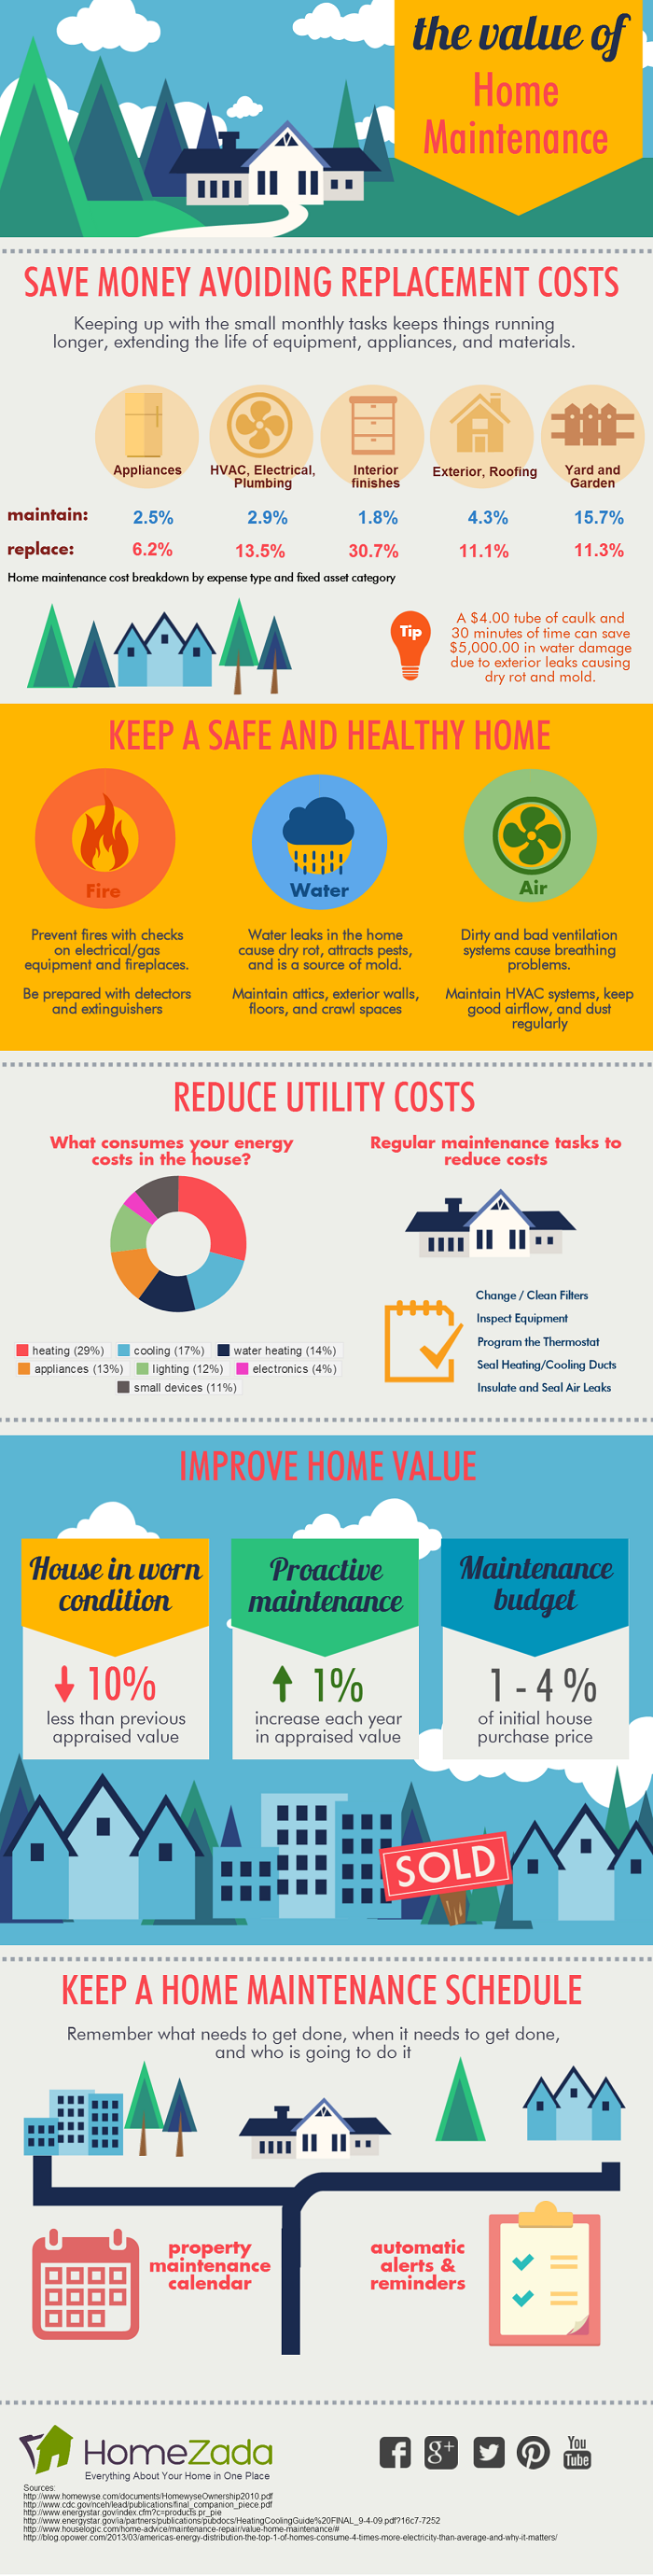 The Value of Home Maintenance infographic